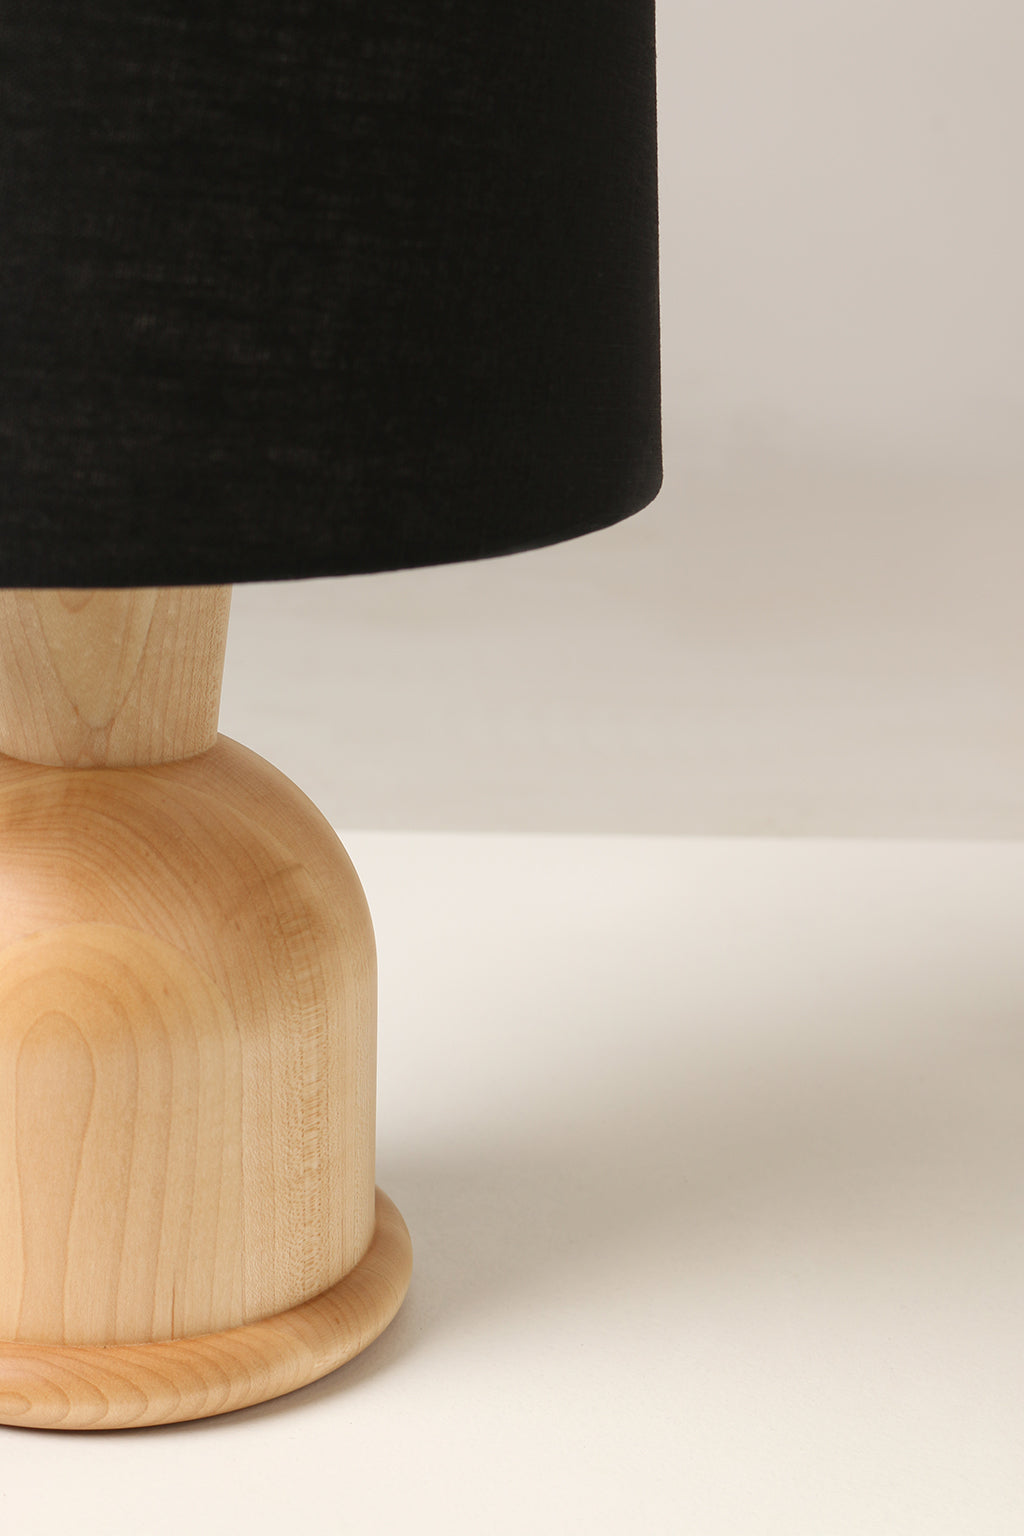 Close up side view of Beacon Table Lamp with Black Linen Shade and Maple Base by Studio DUNN